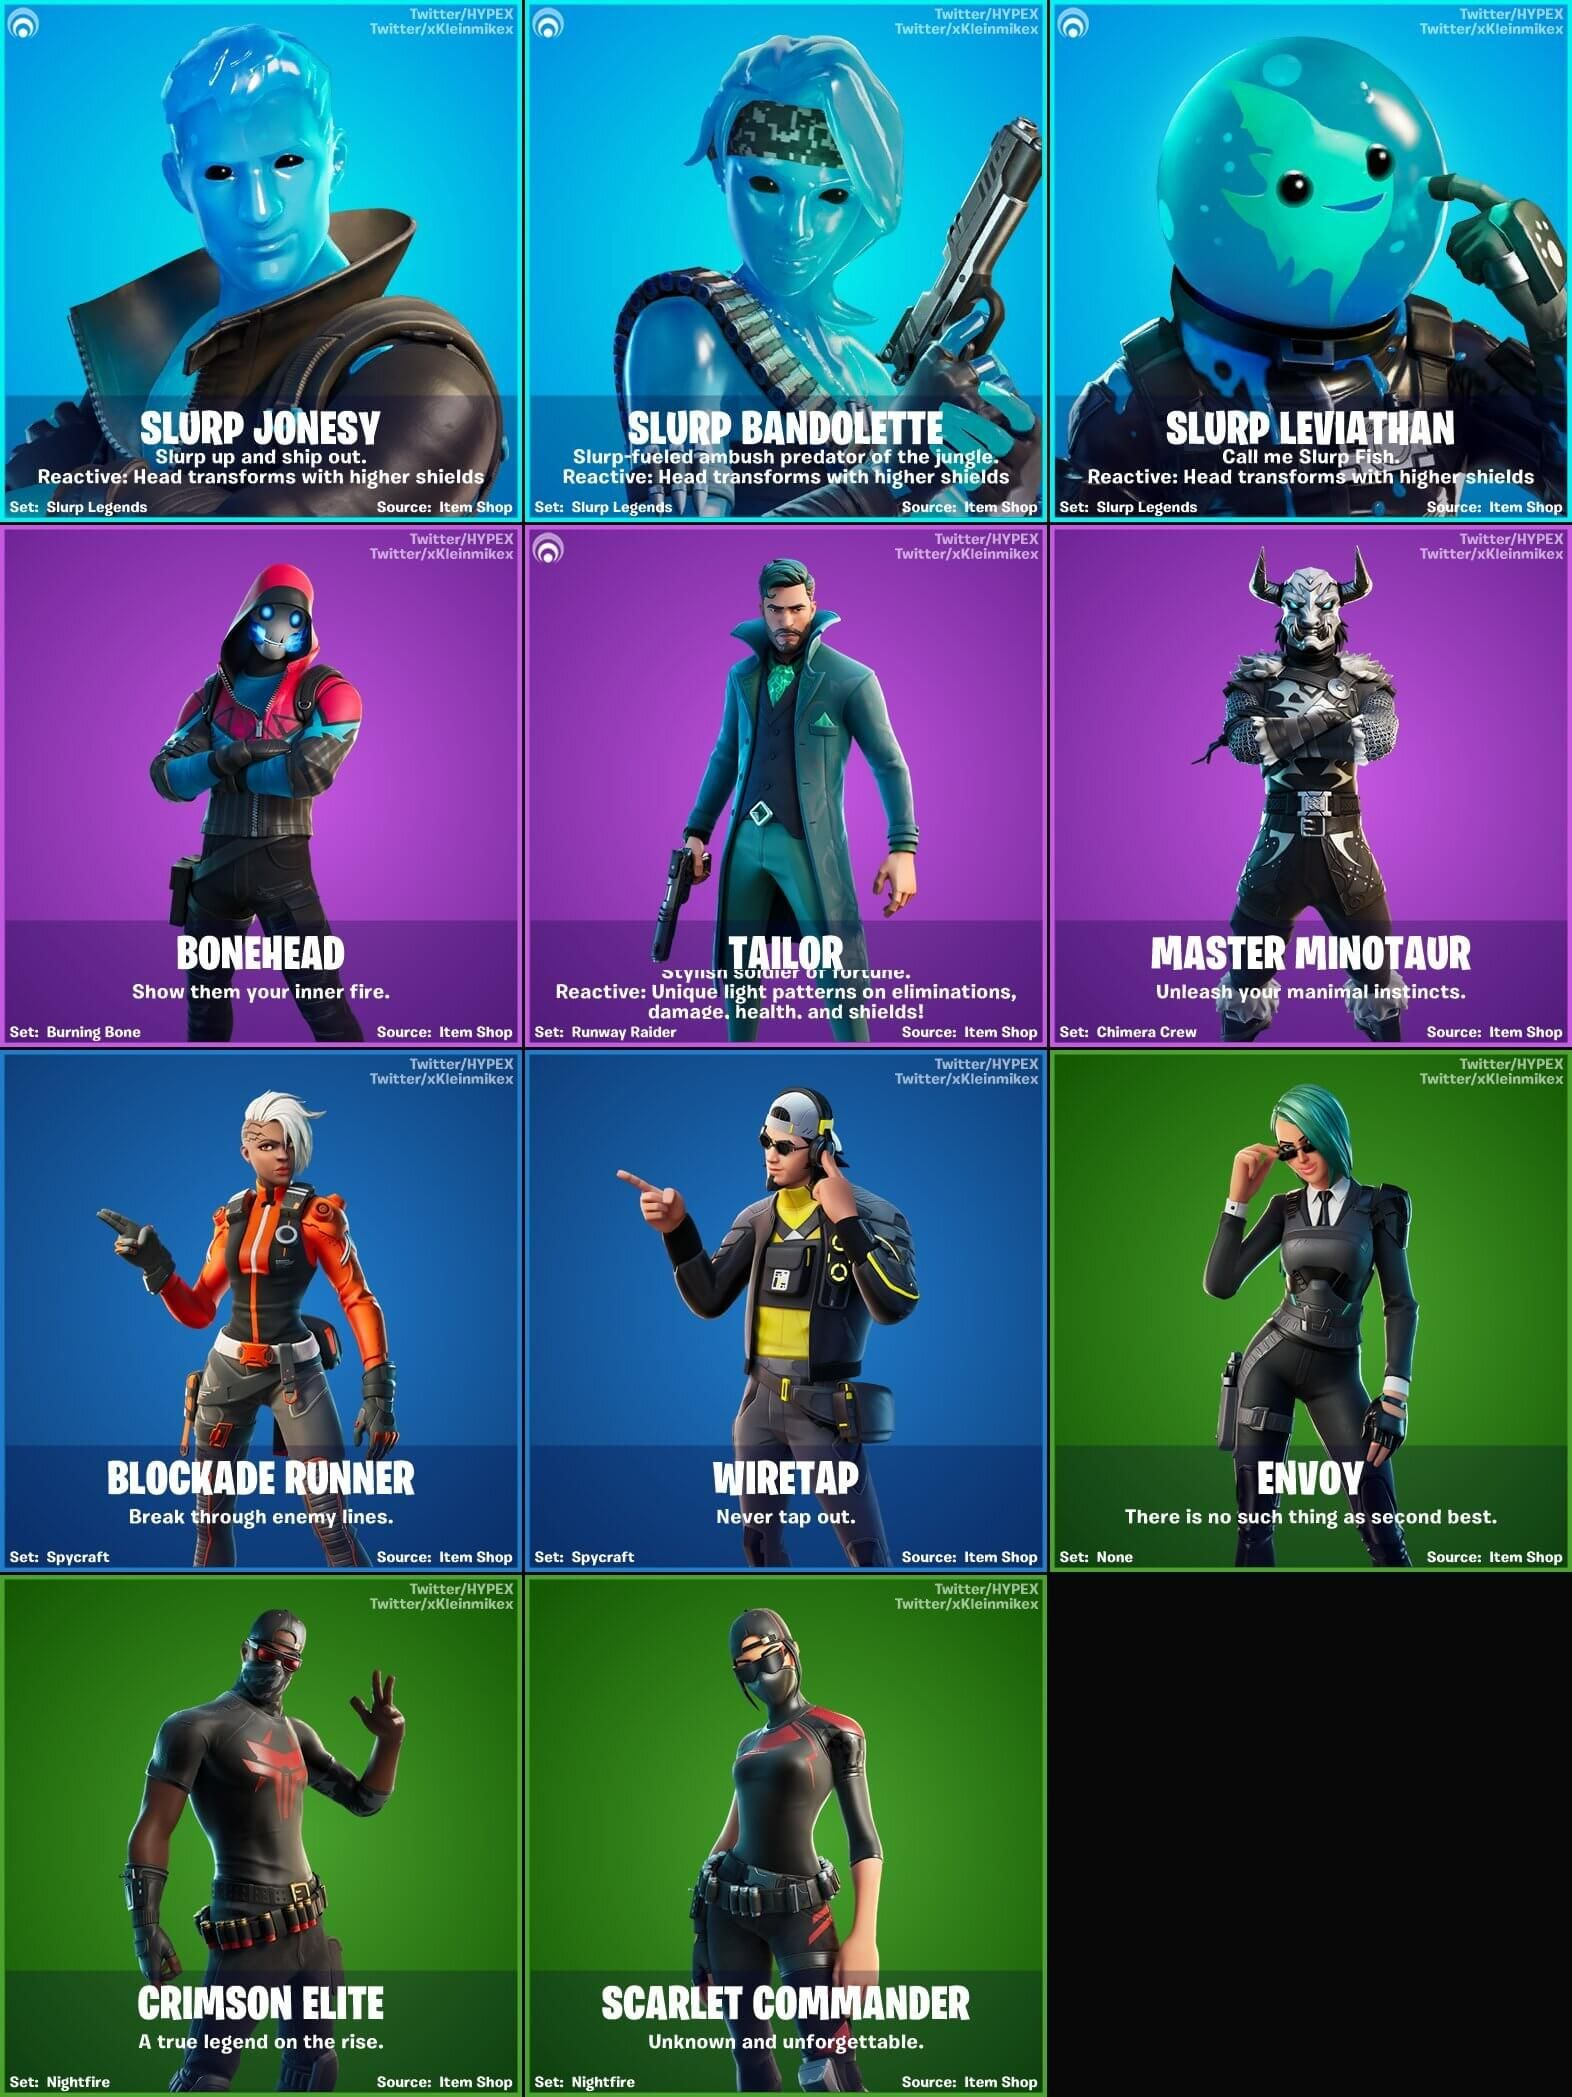 Pin On Fortnite Chapter 2 Skins Outfits